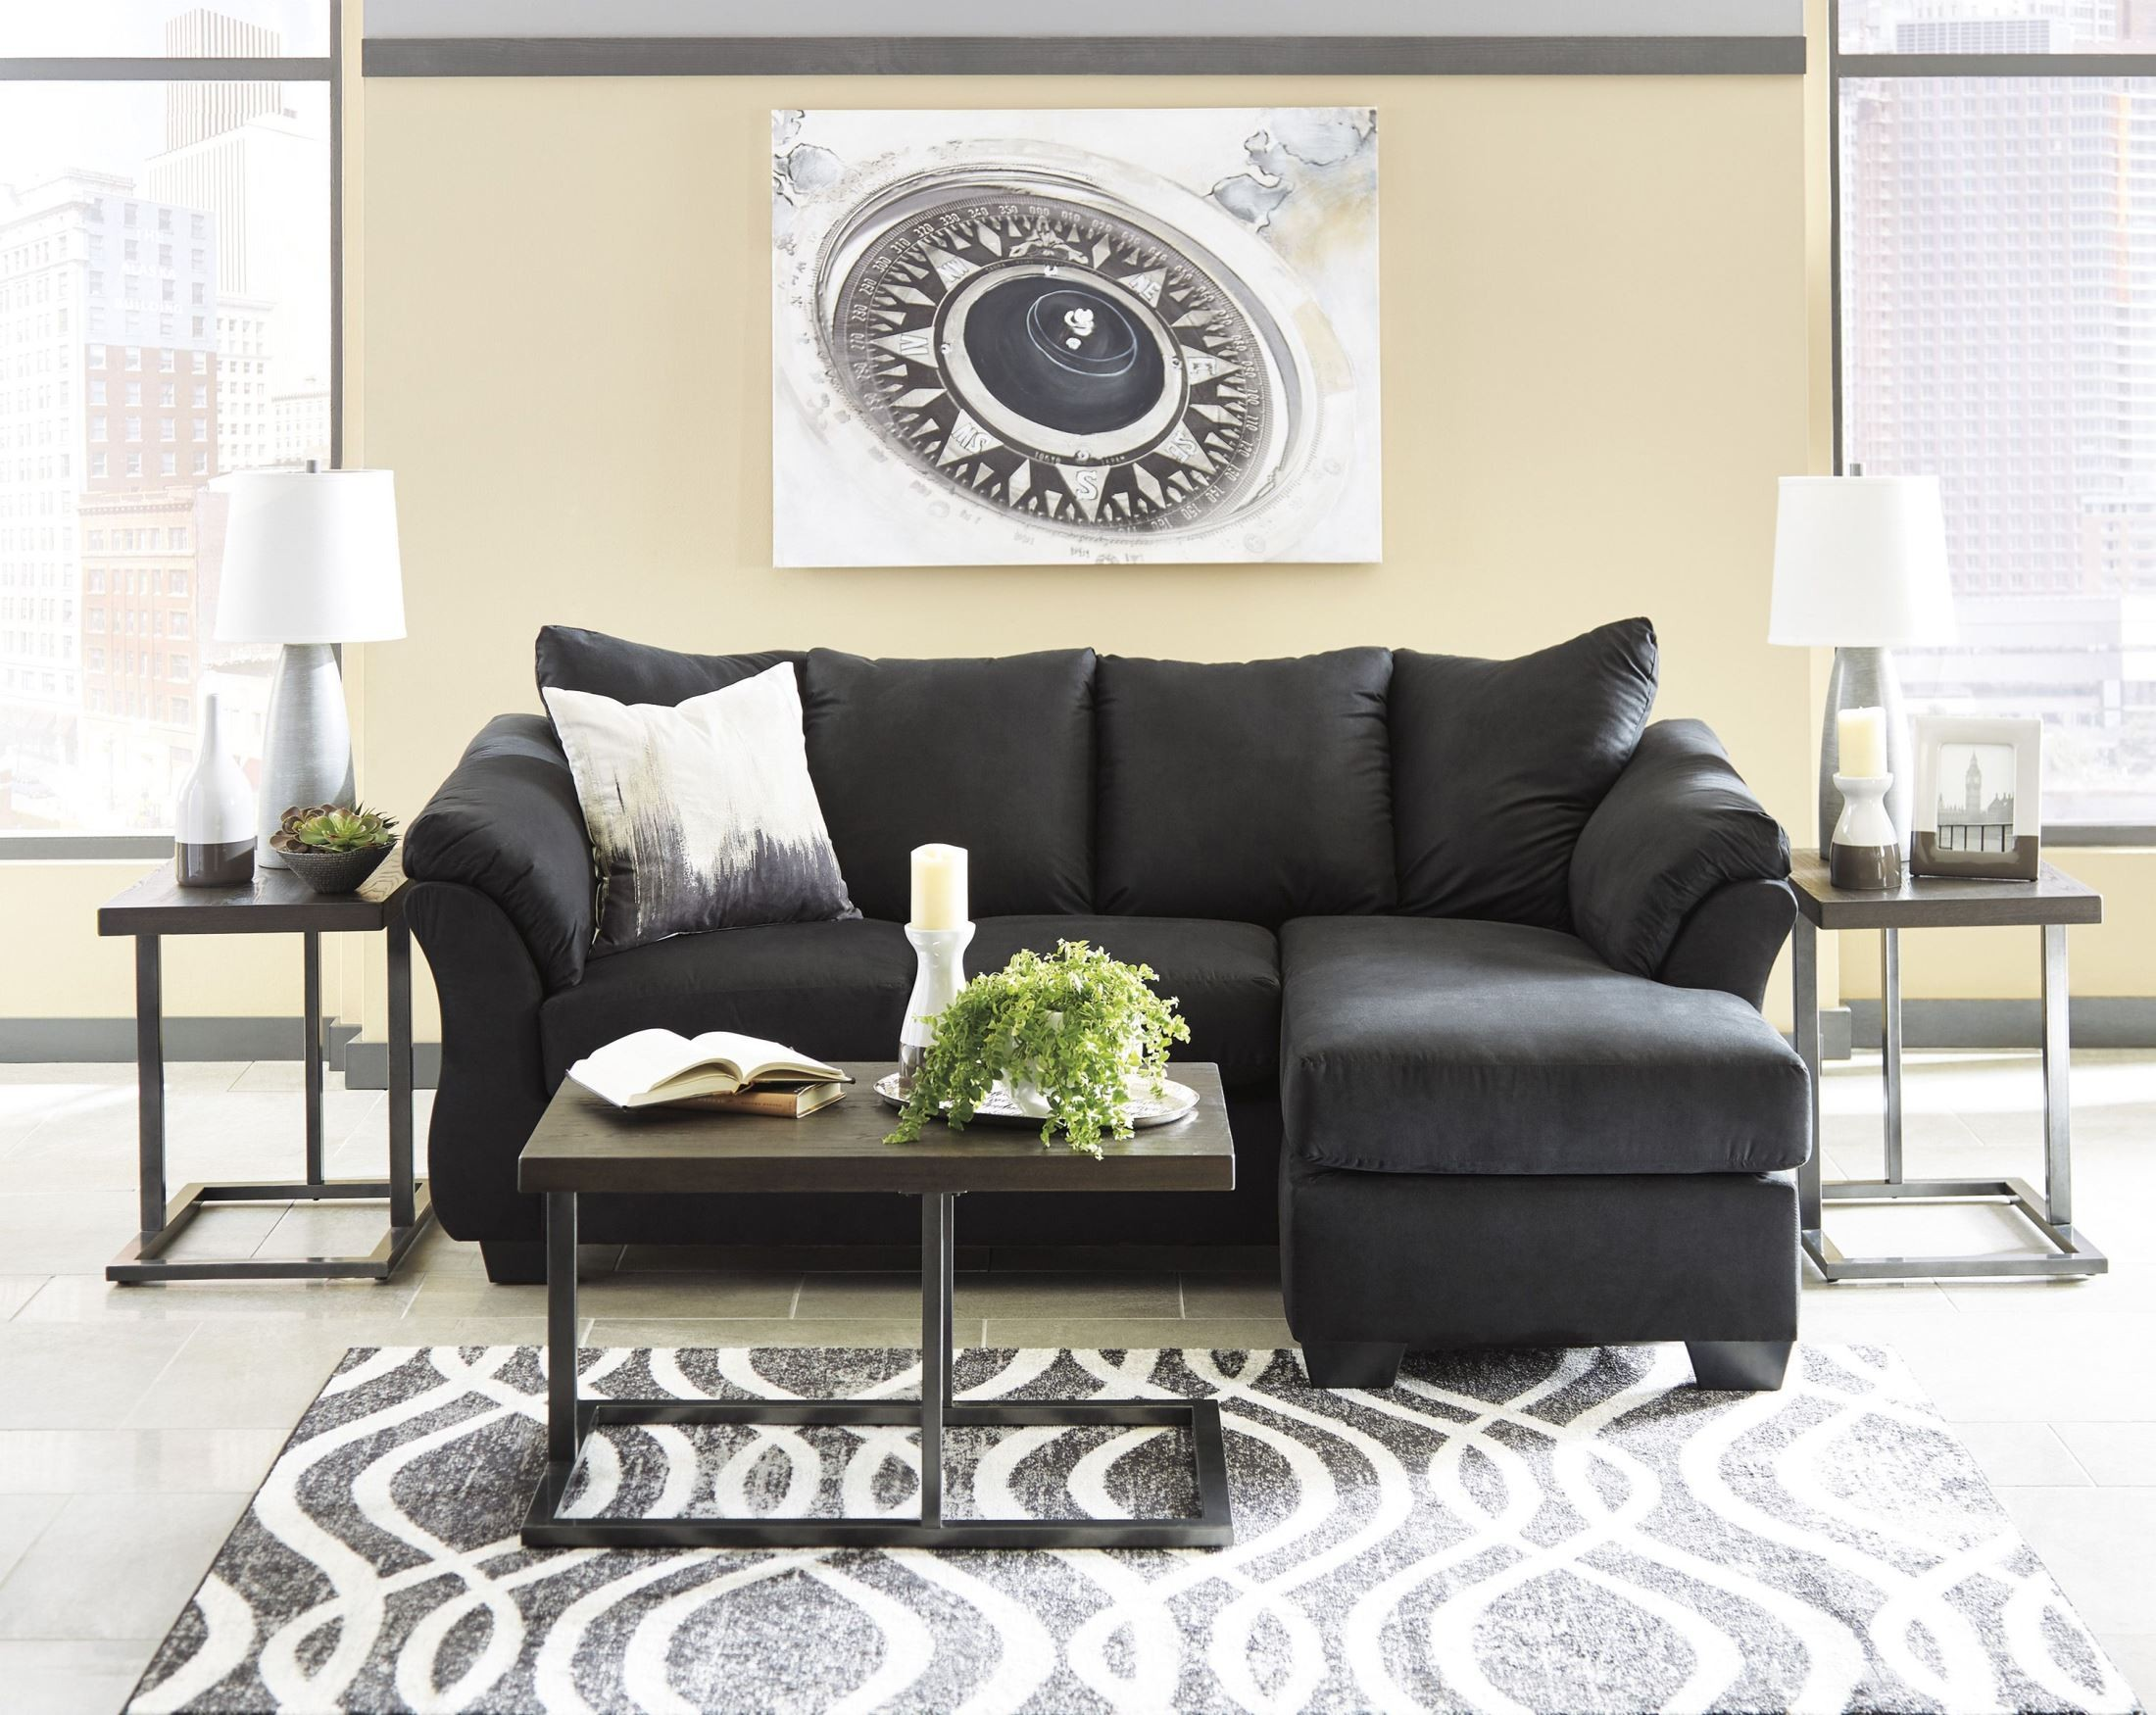 darcy sofa chaise ashley furniture oversized plush sectional black from coleman